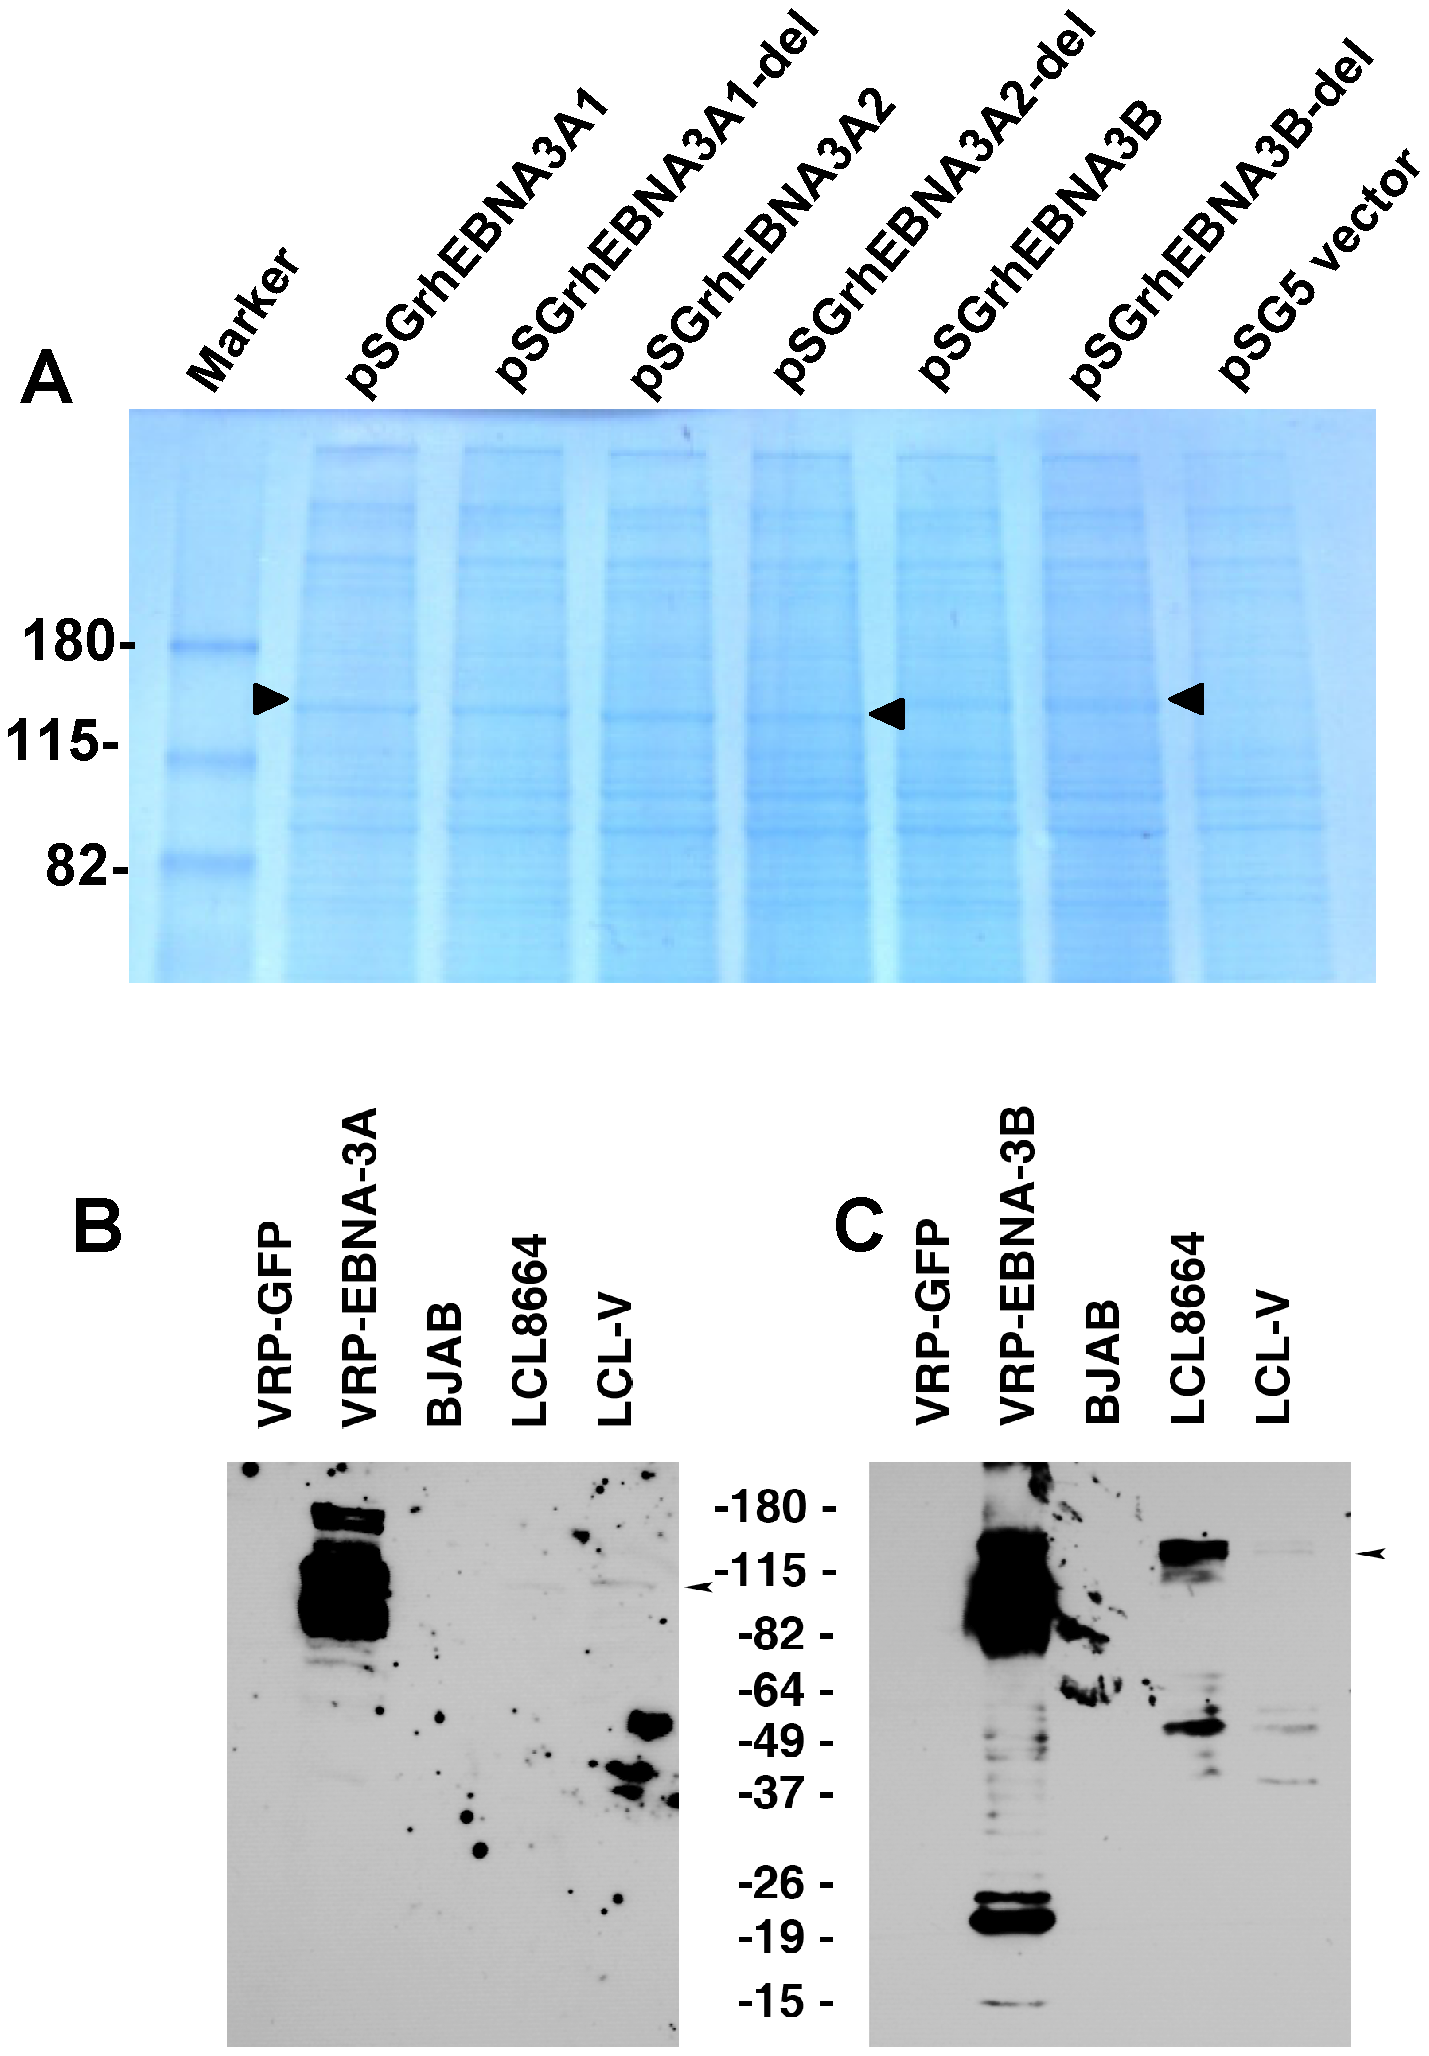 Expression of EBNA-3A and EBNA-3B in transfected and latently infected cells.